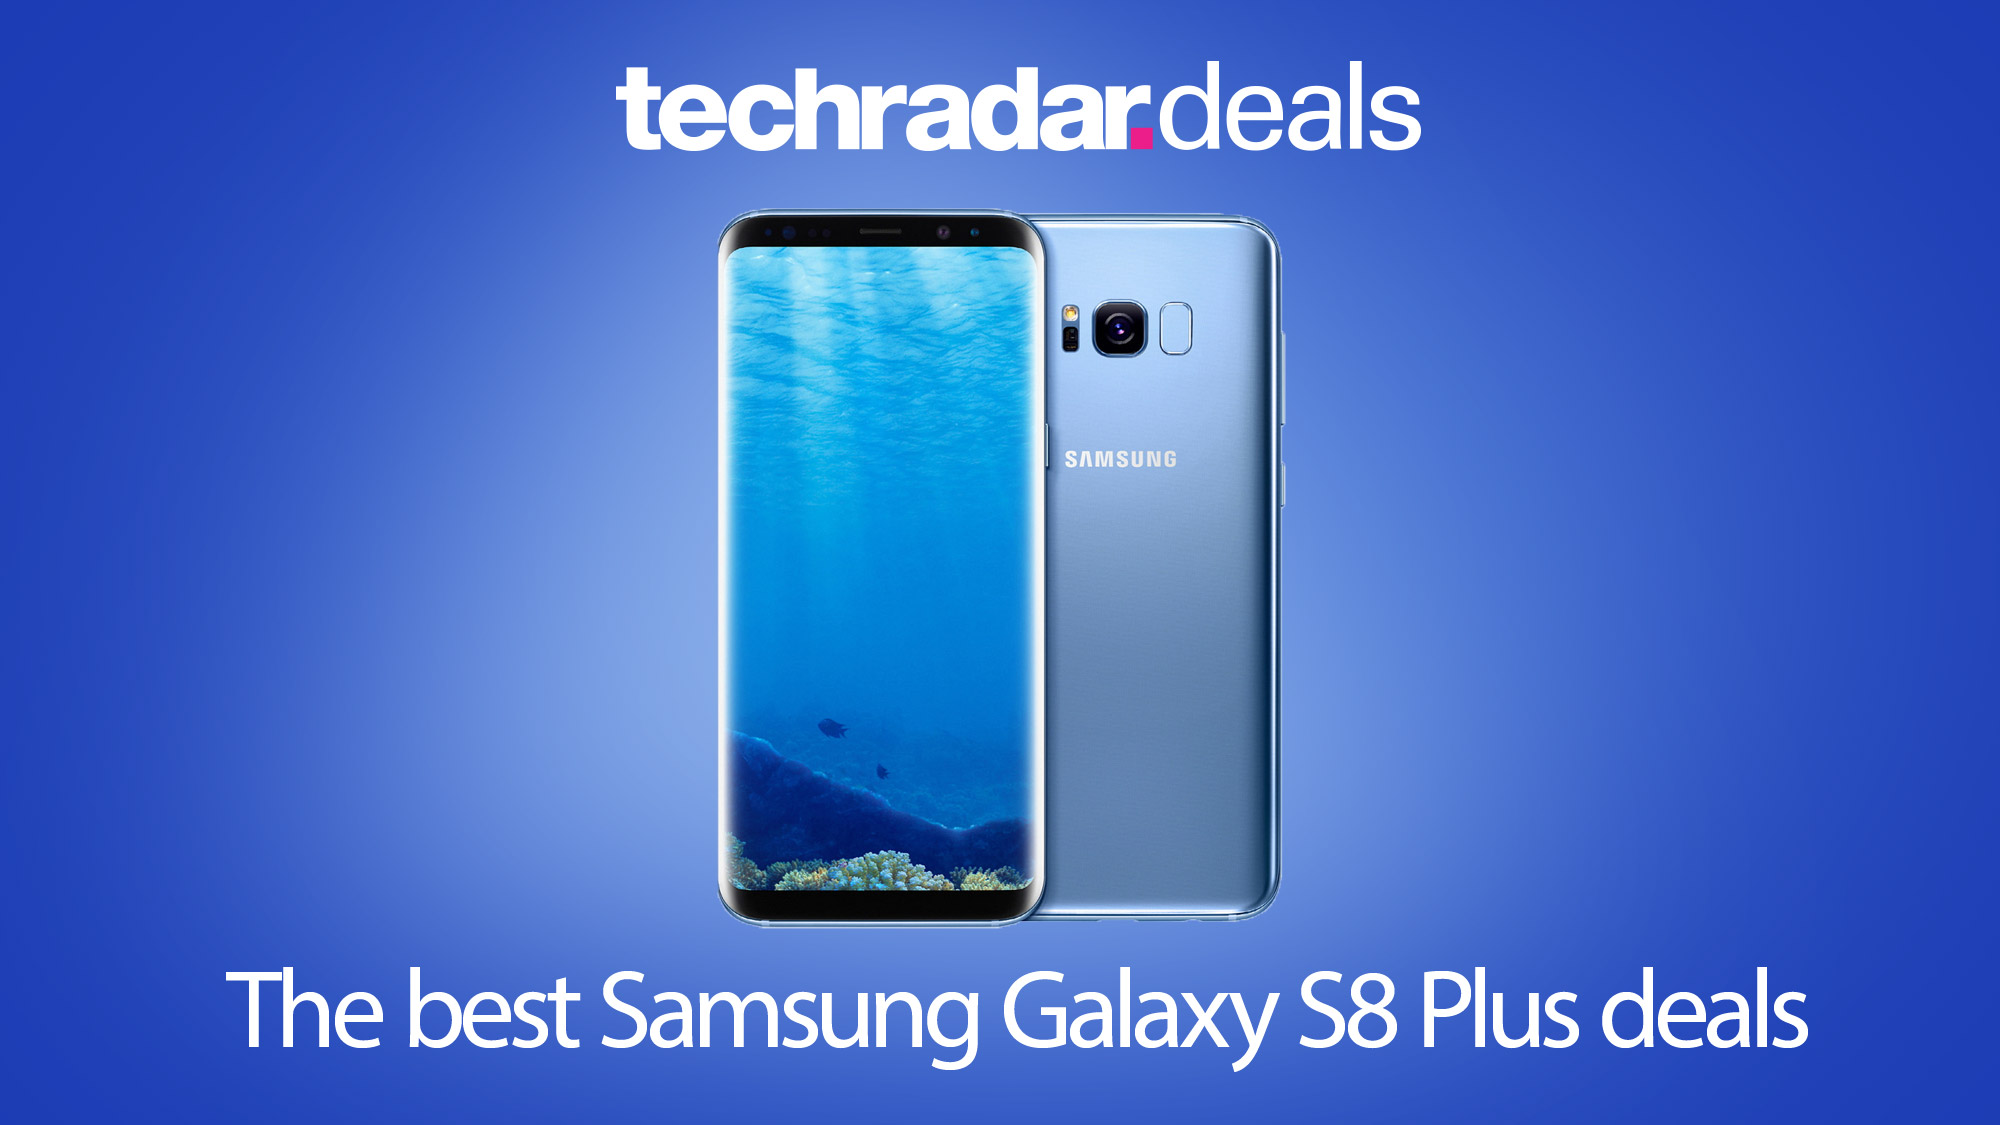 The best Samsung Galaxy S8 Plus deals in January 2020